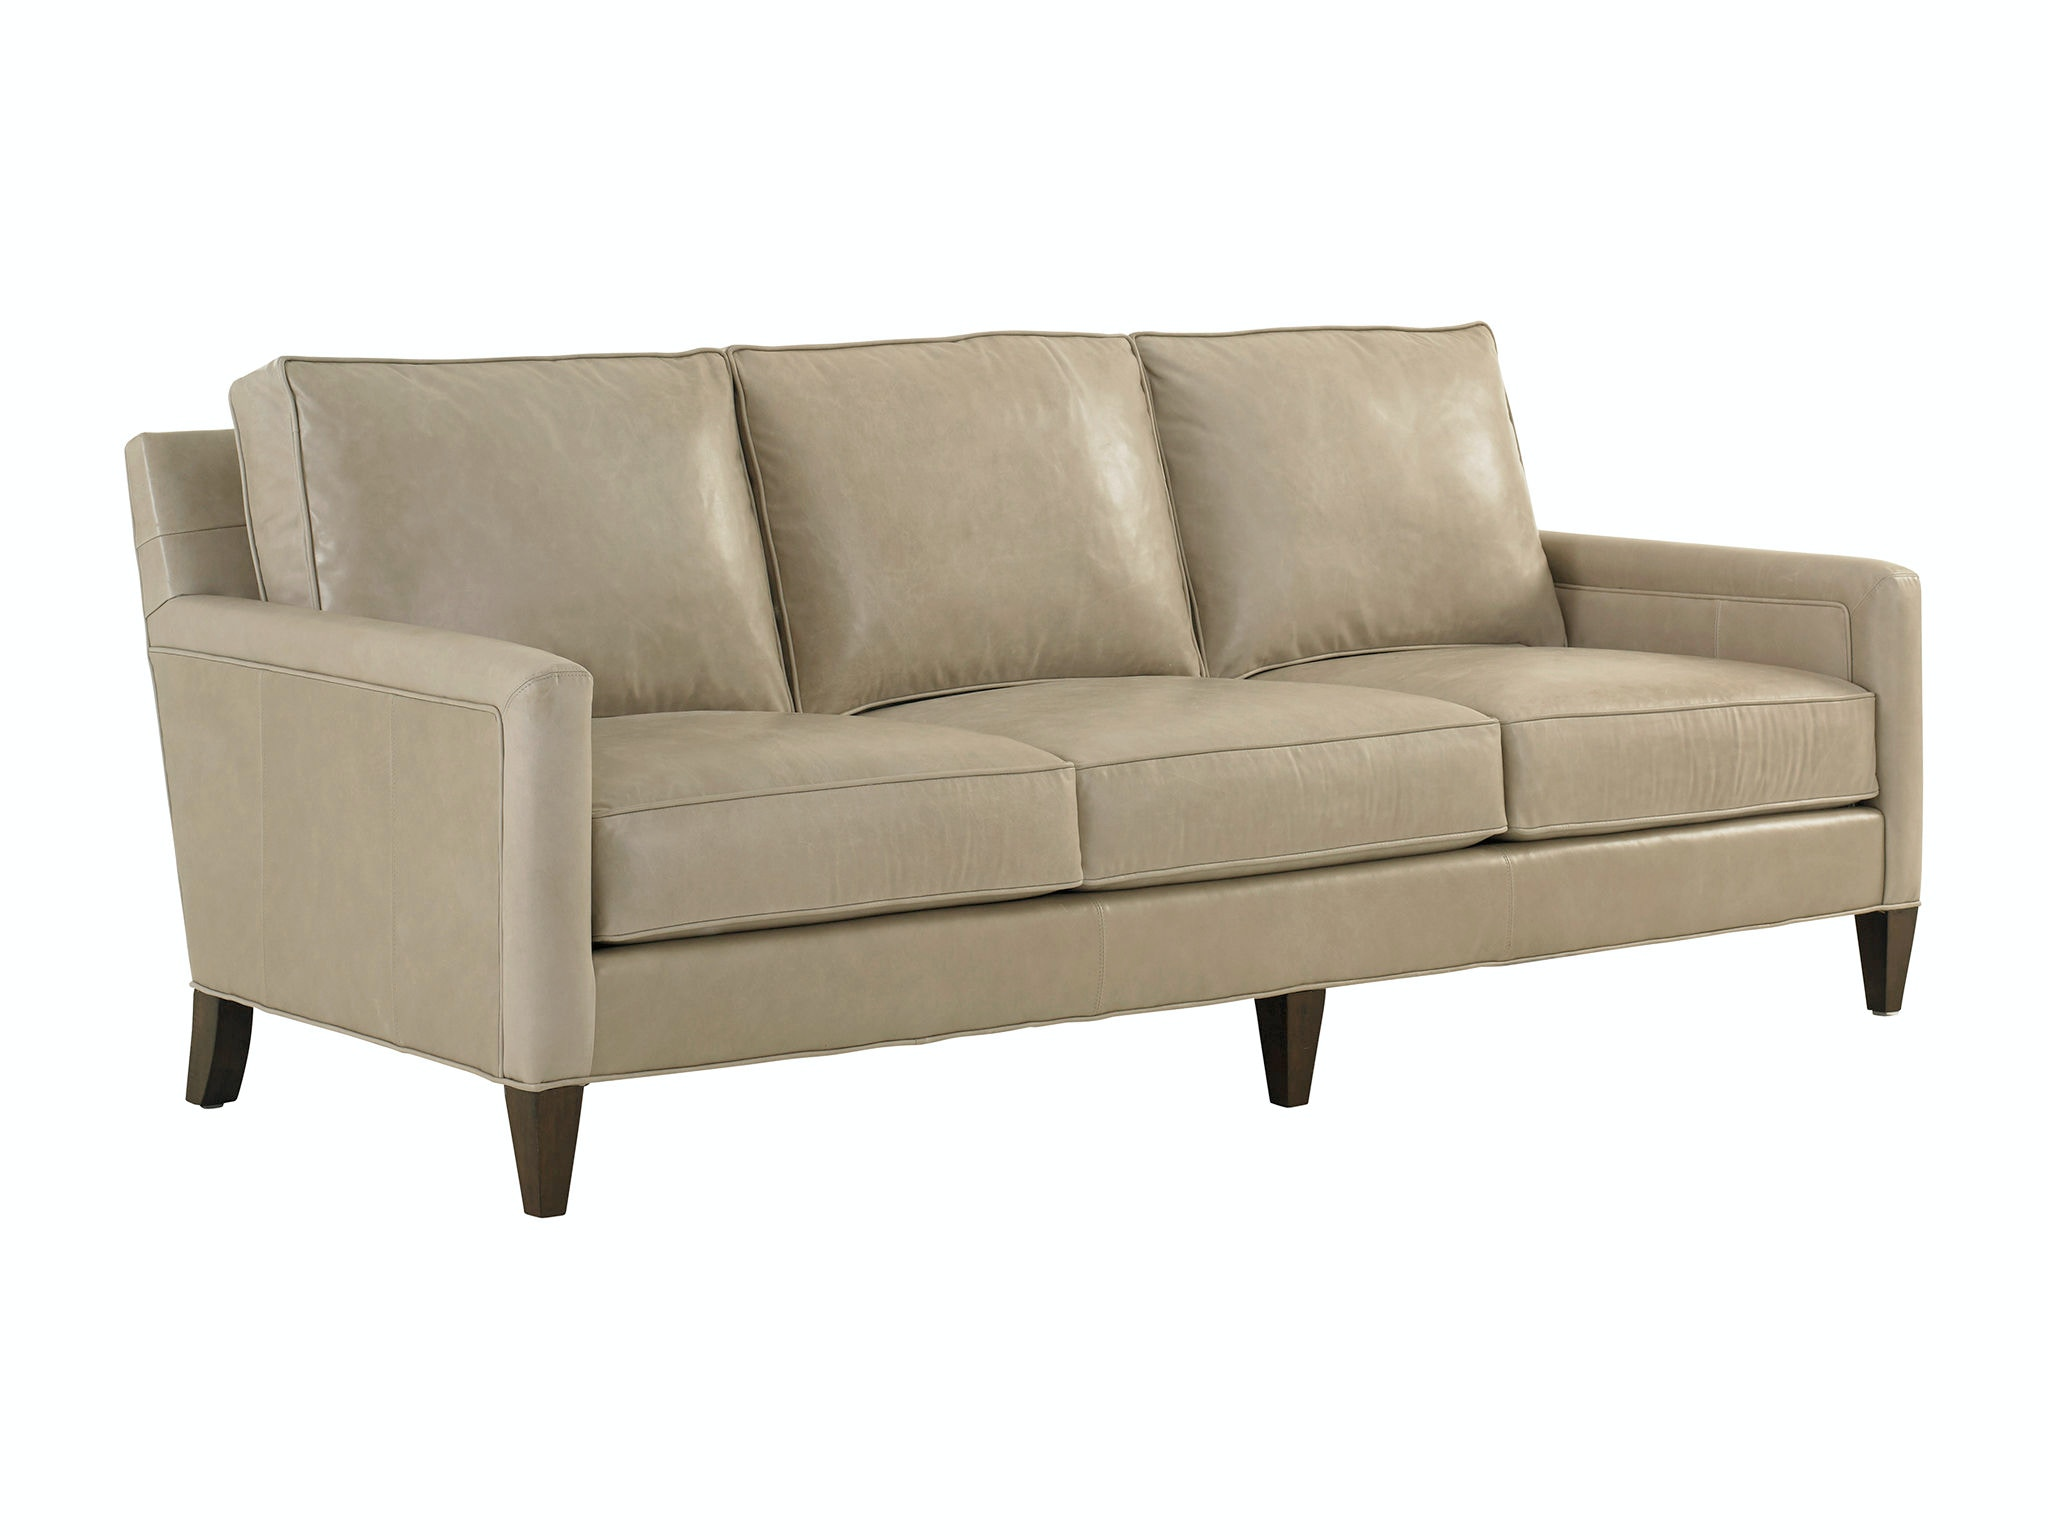 Lexington Living Room Foxboro Leather Sofa 9407-33-01 - Ennis Fine Furniture - Boise, ID, Reno ...